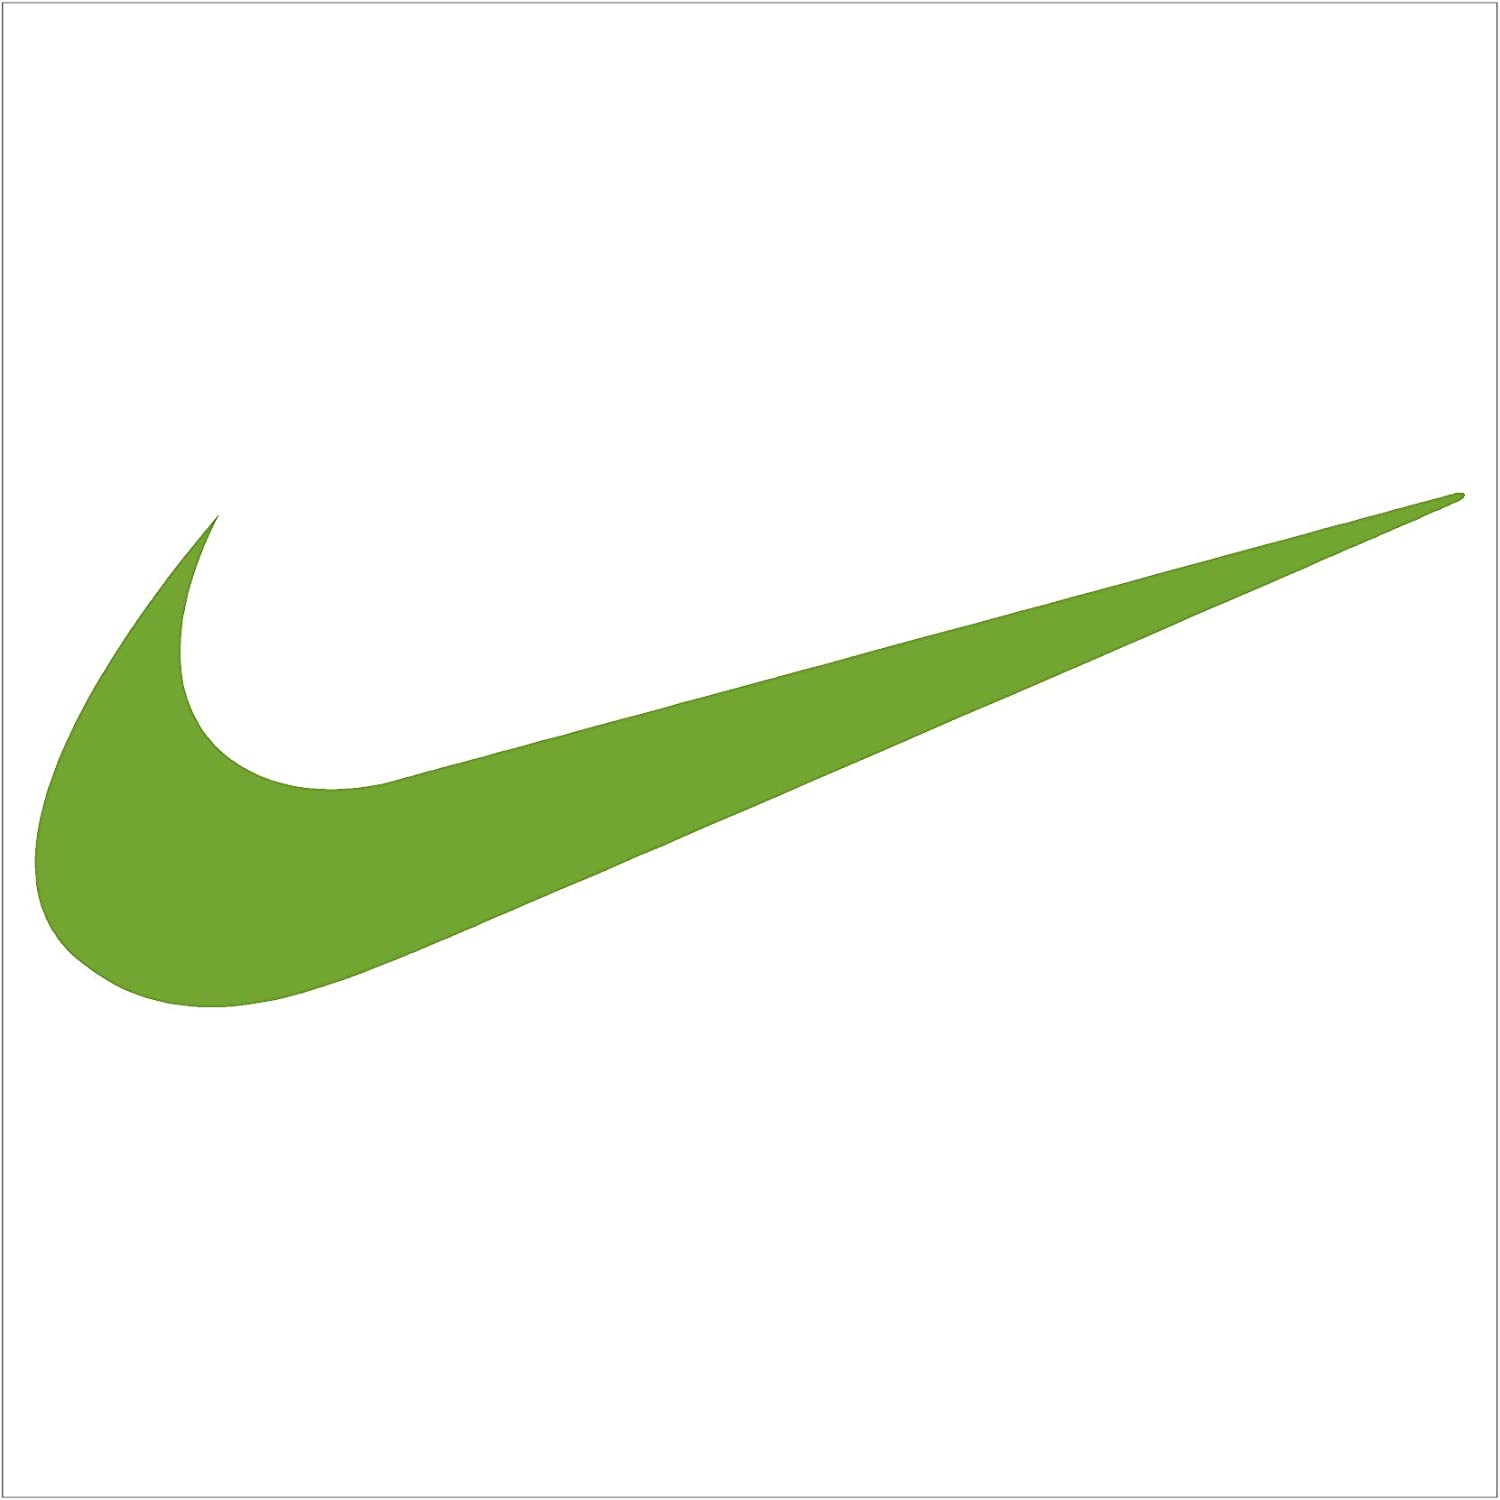 Image result for nike green swoosh